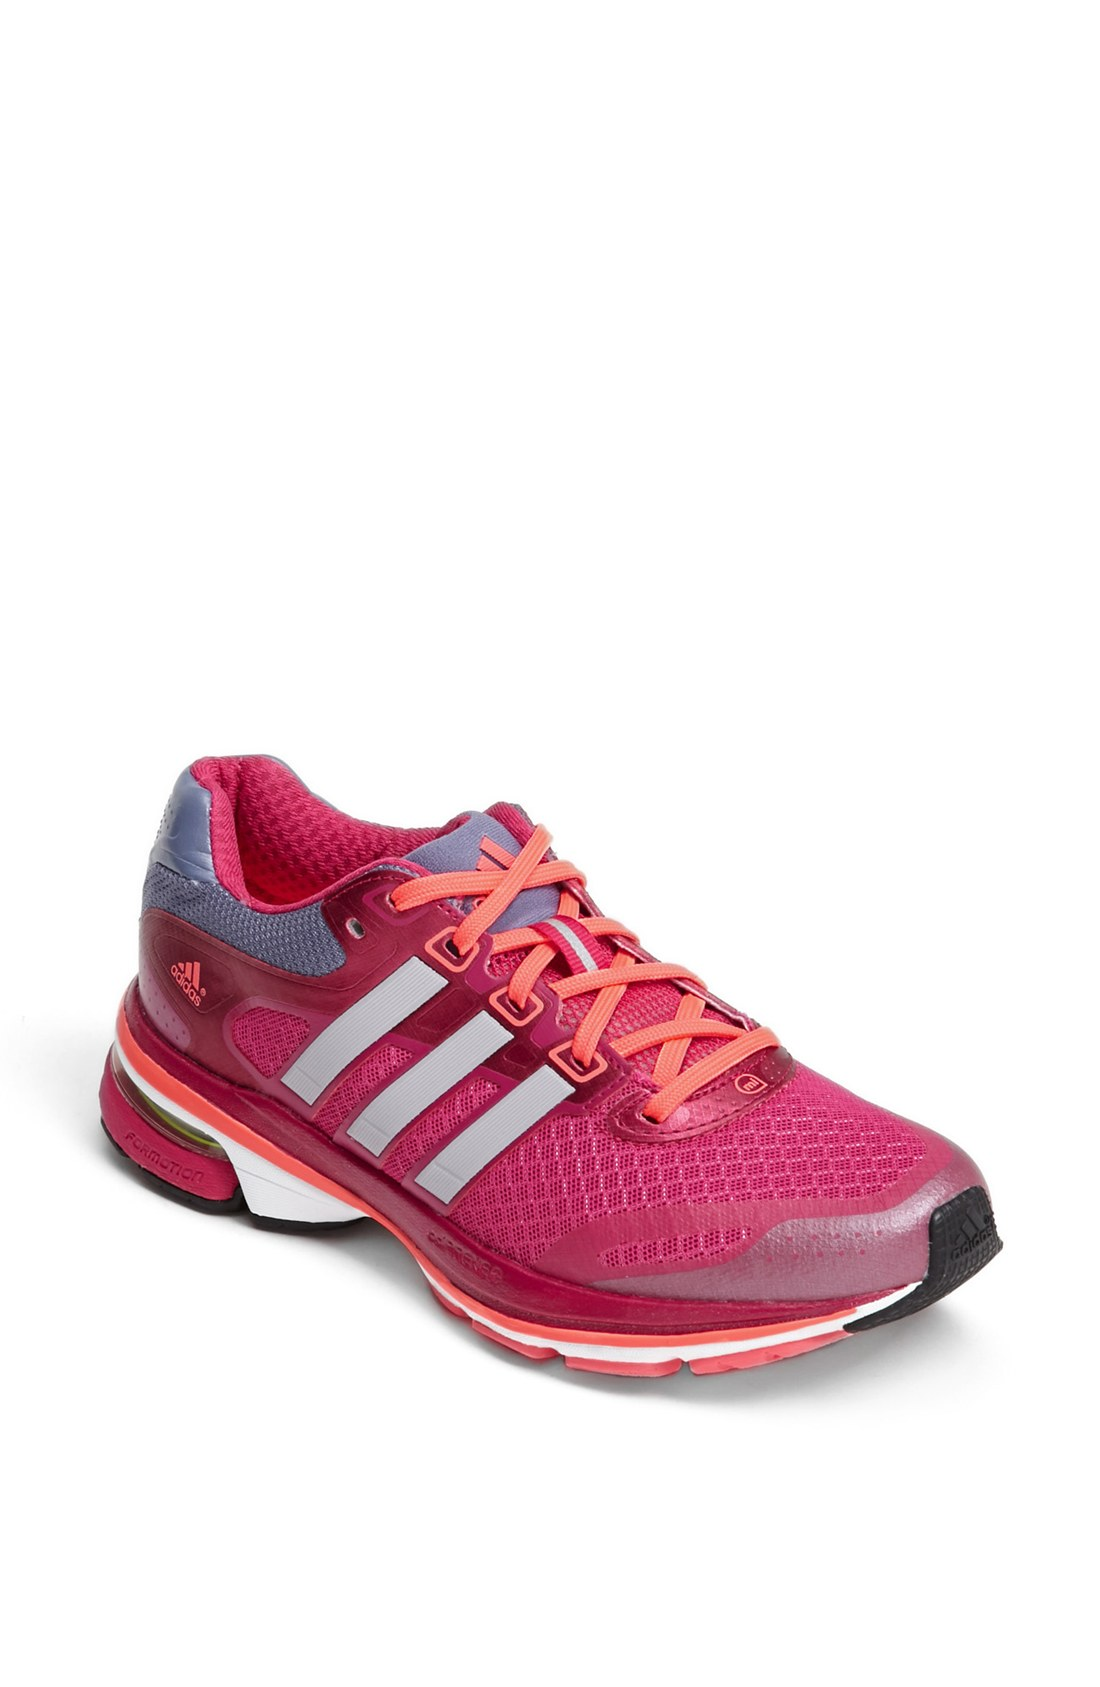 adidas supernova glide 5 running shoe in pink pink